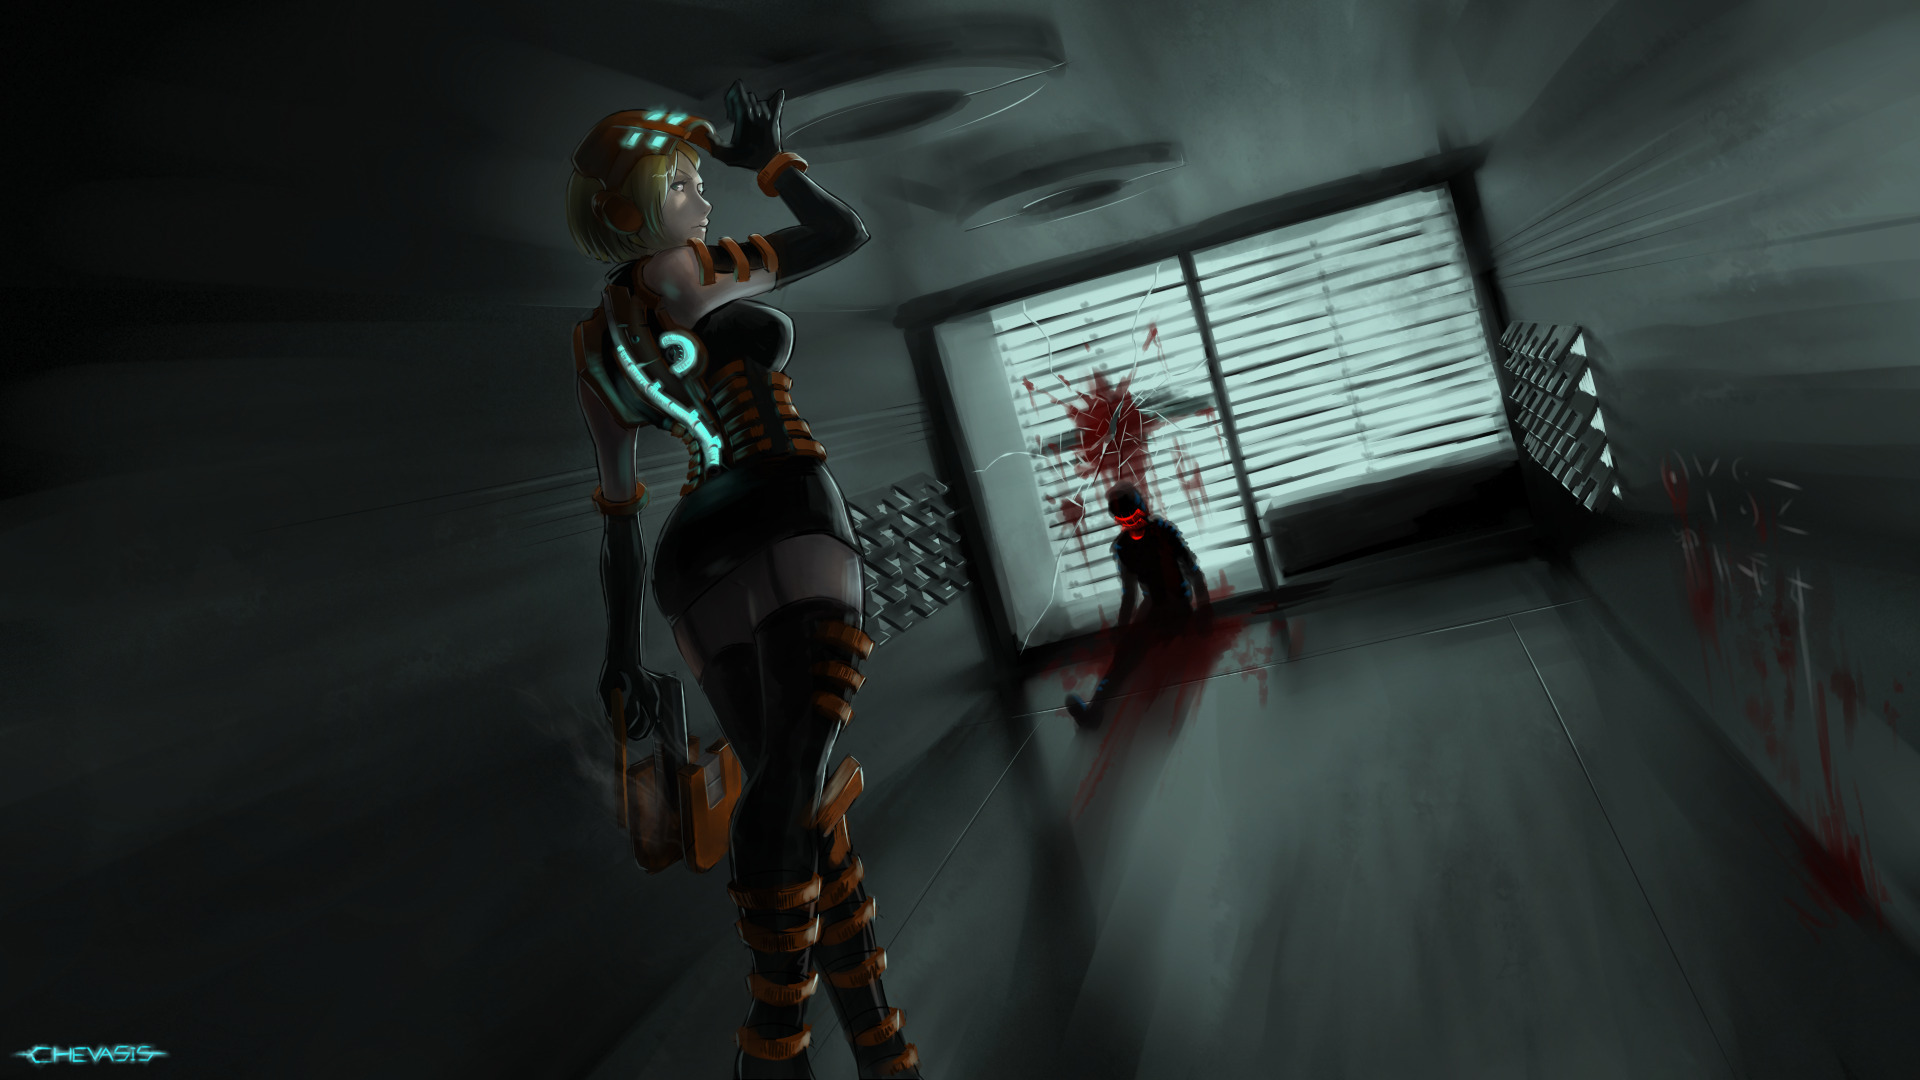 Dead space full hd wallpaper and background image - Dead space 1 wallpaper hd ...